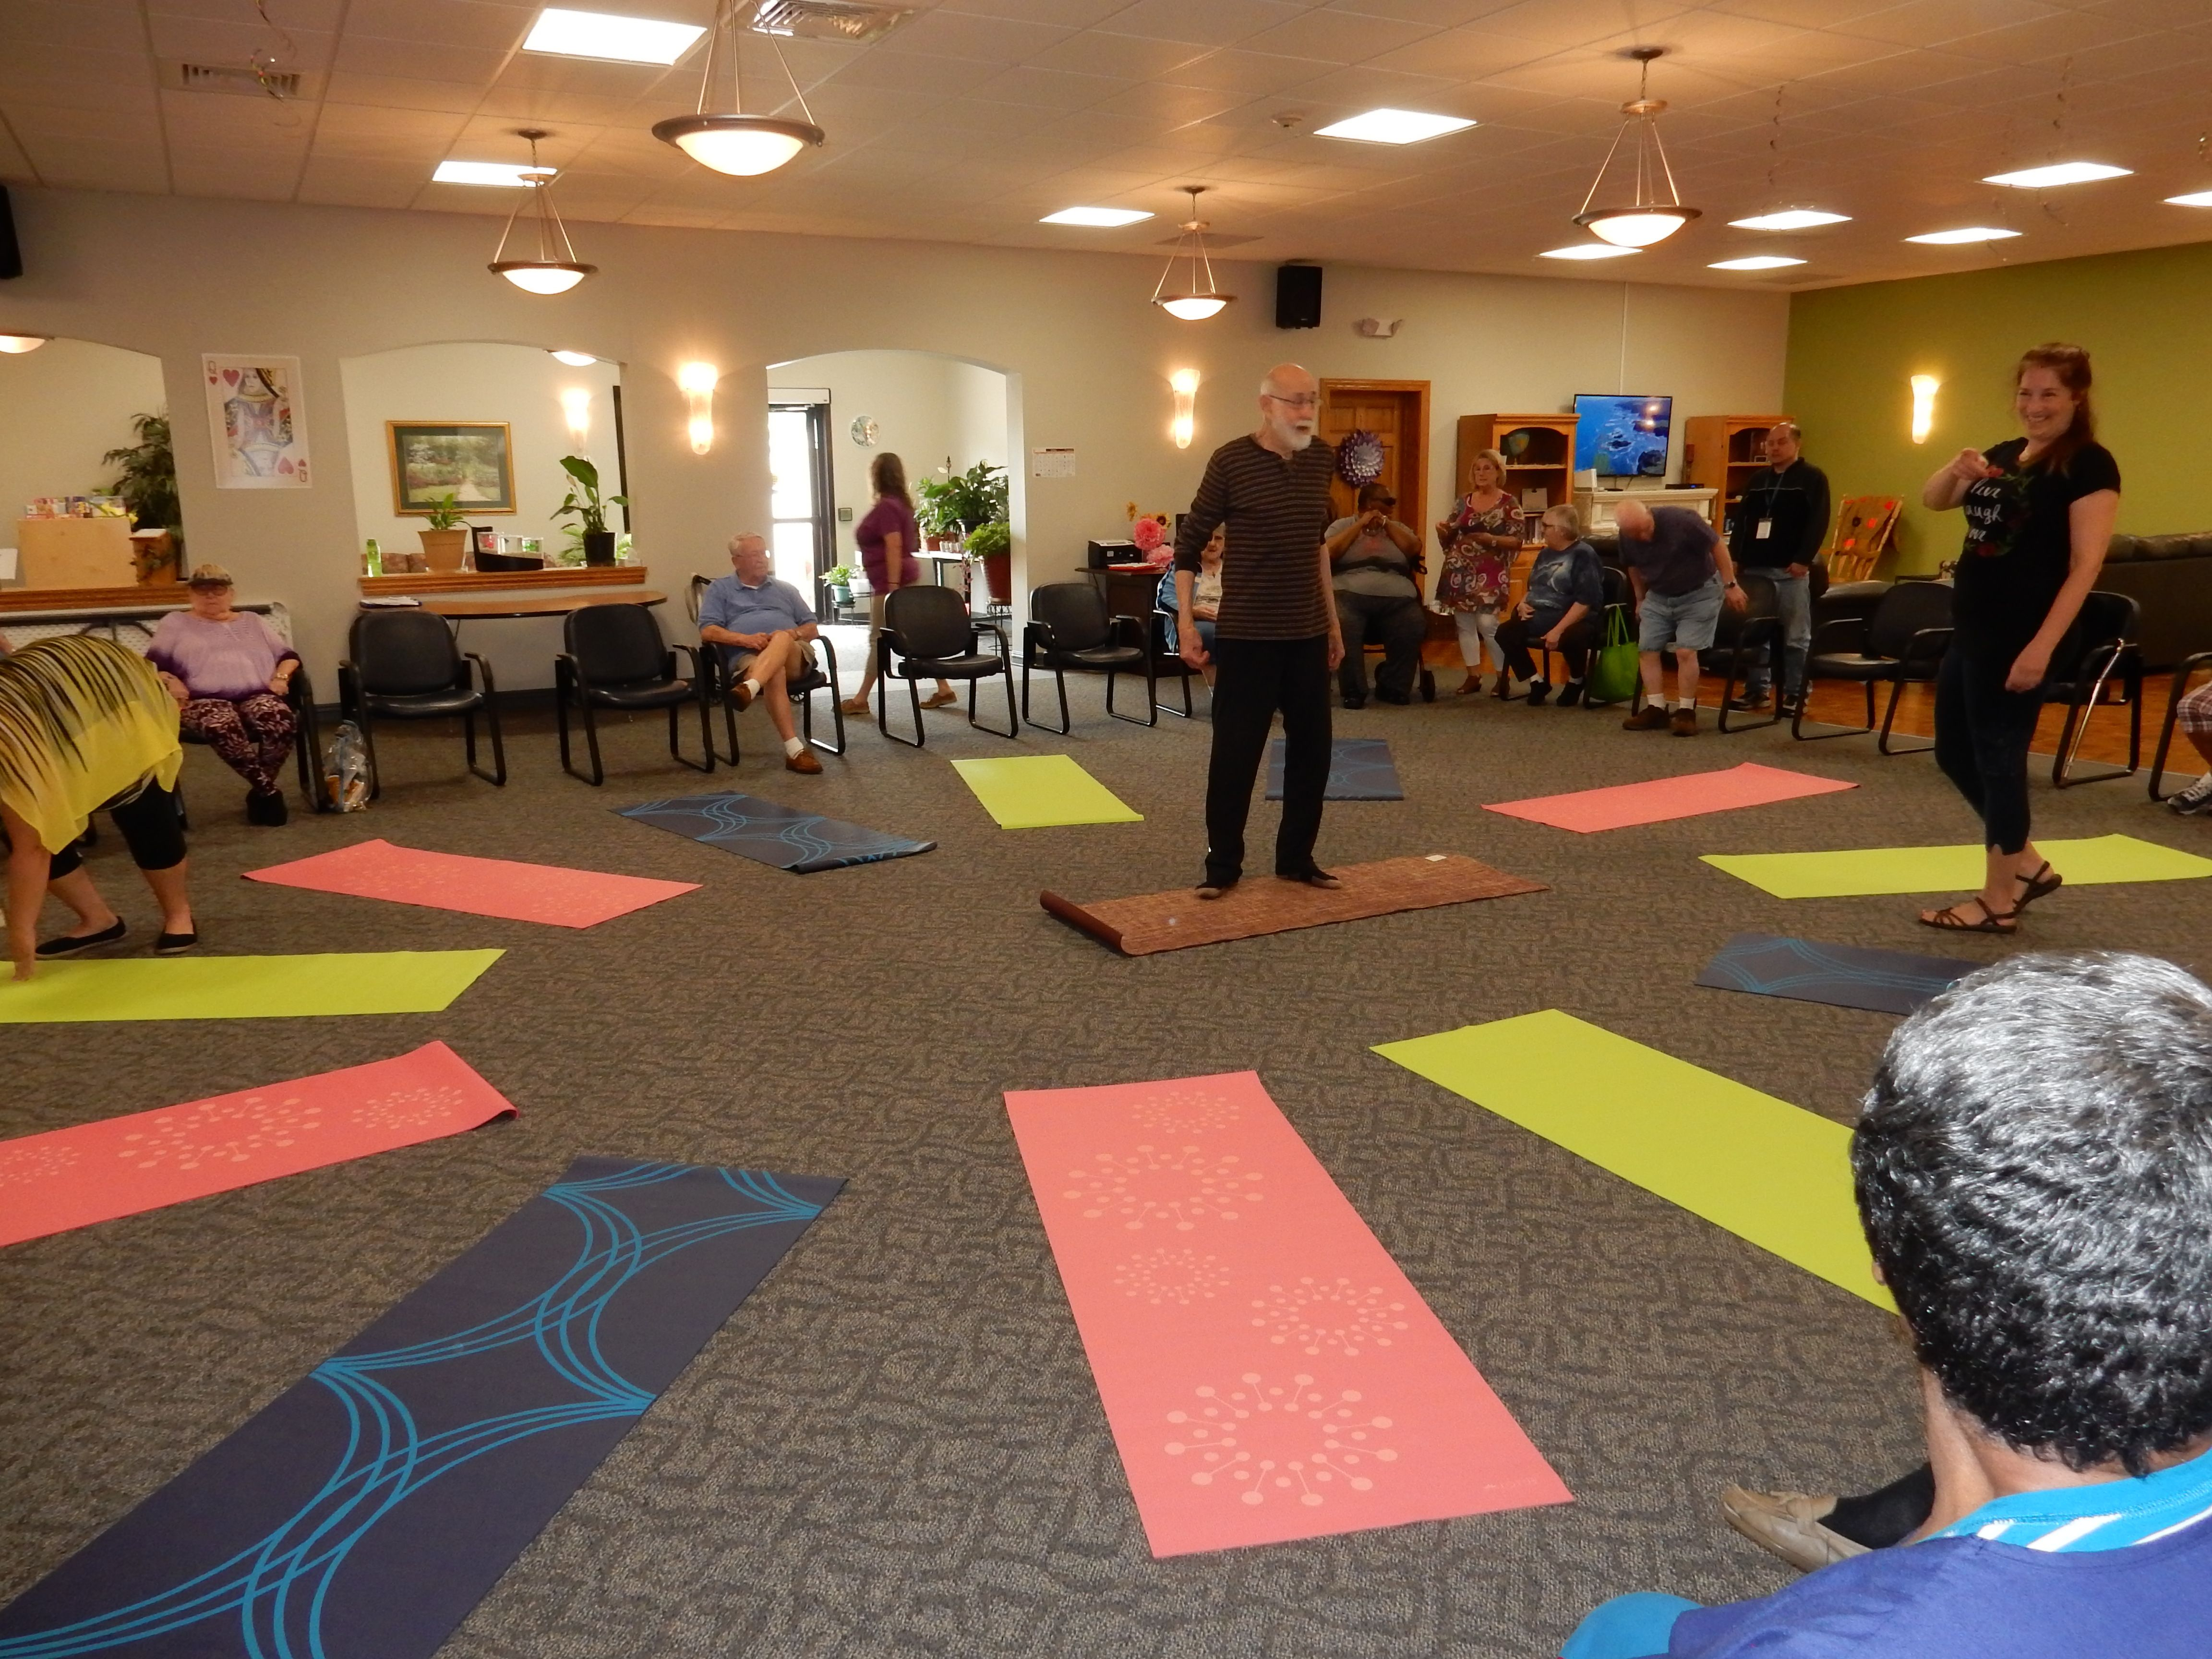 Thank you to Rhonda Kuster and Kedric, YOGA INSTRUCTORS, for donating all the YOGA mats to the children!